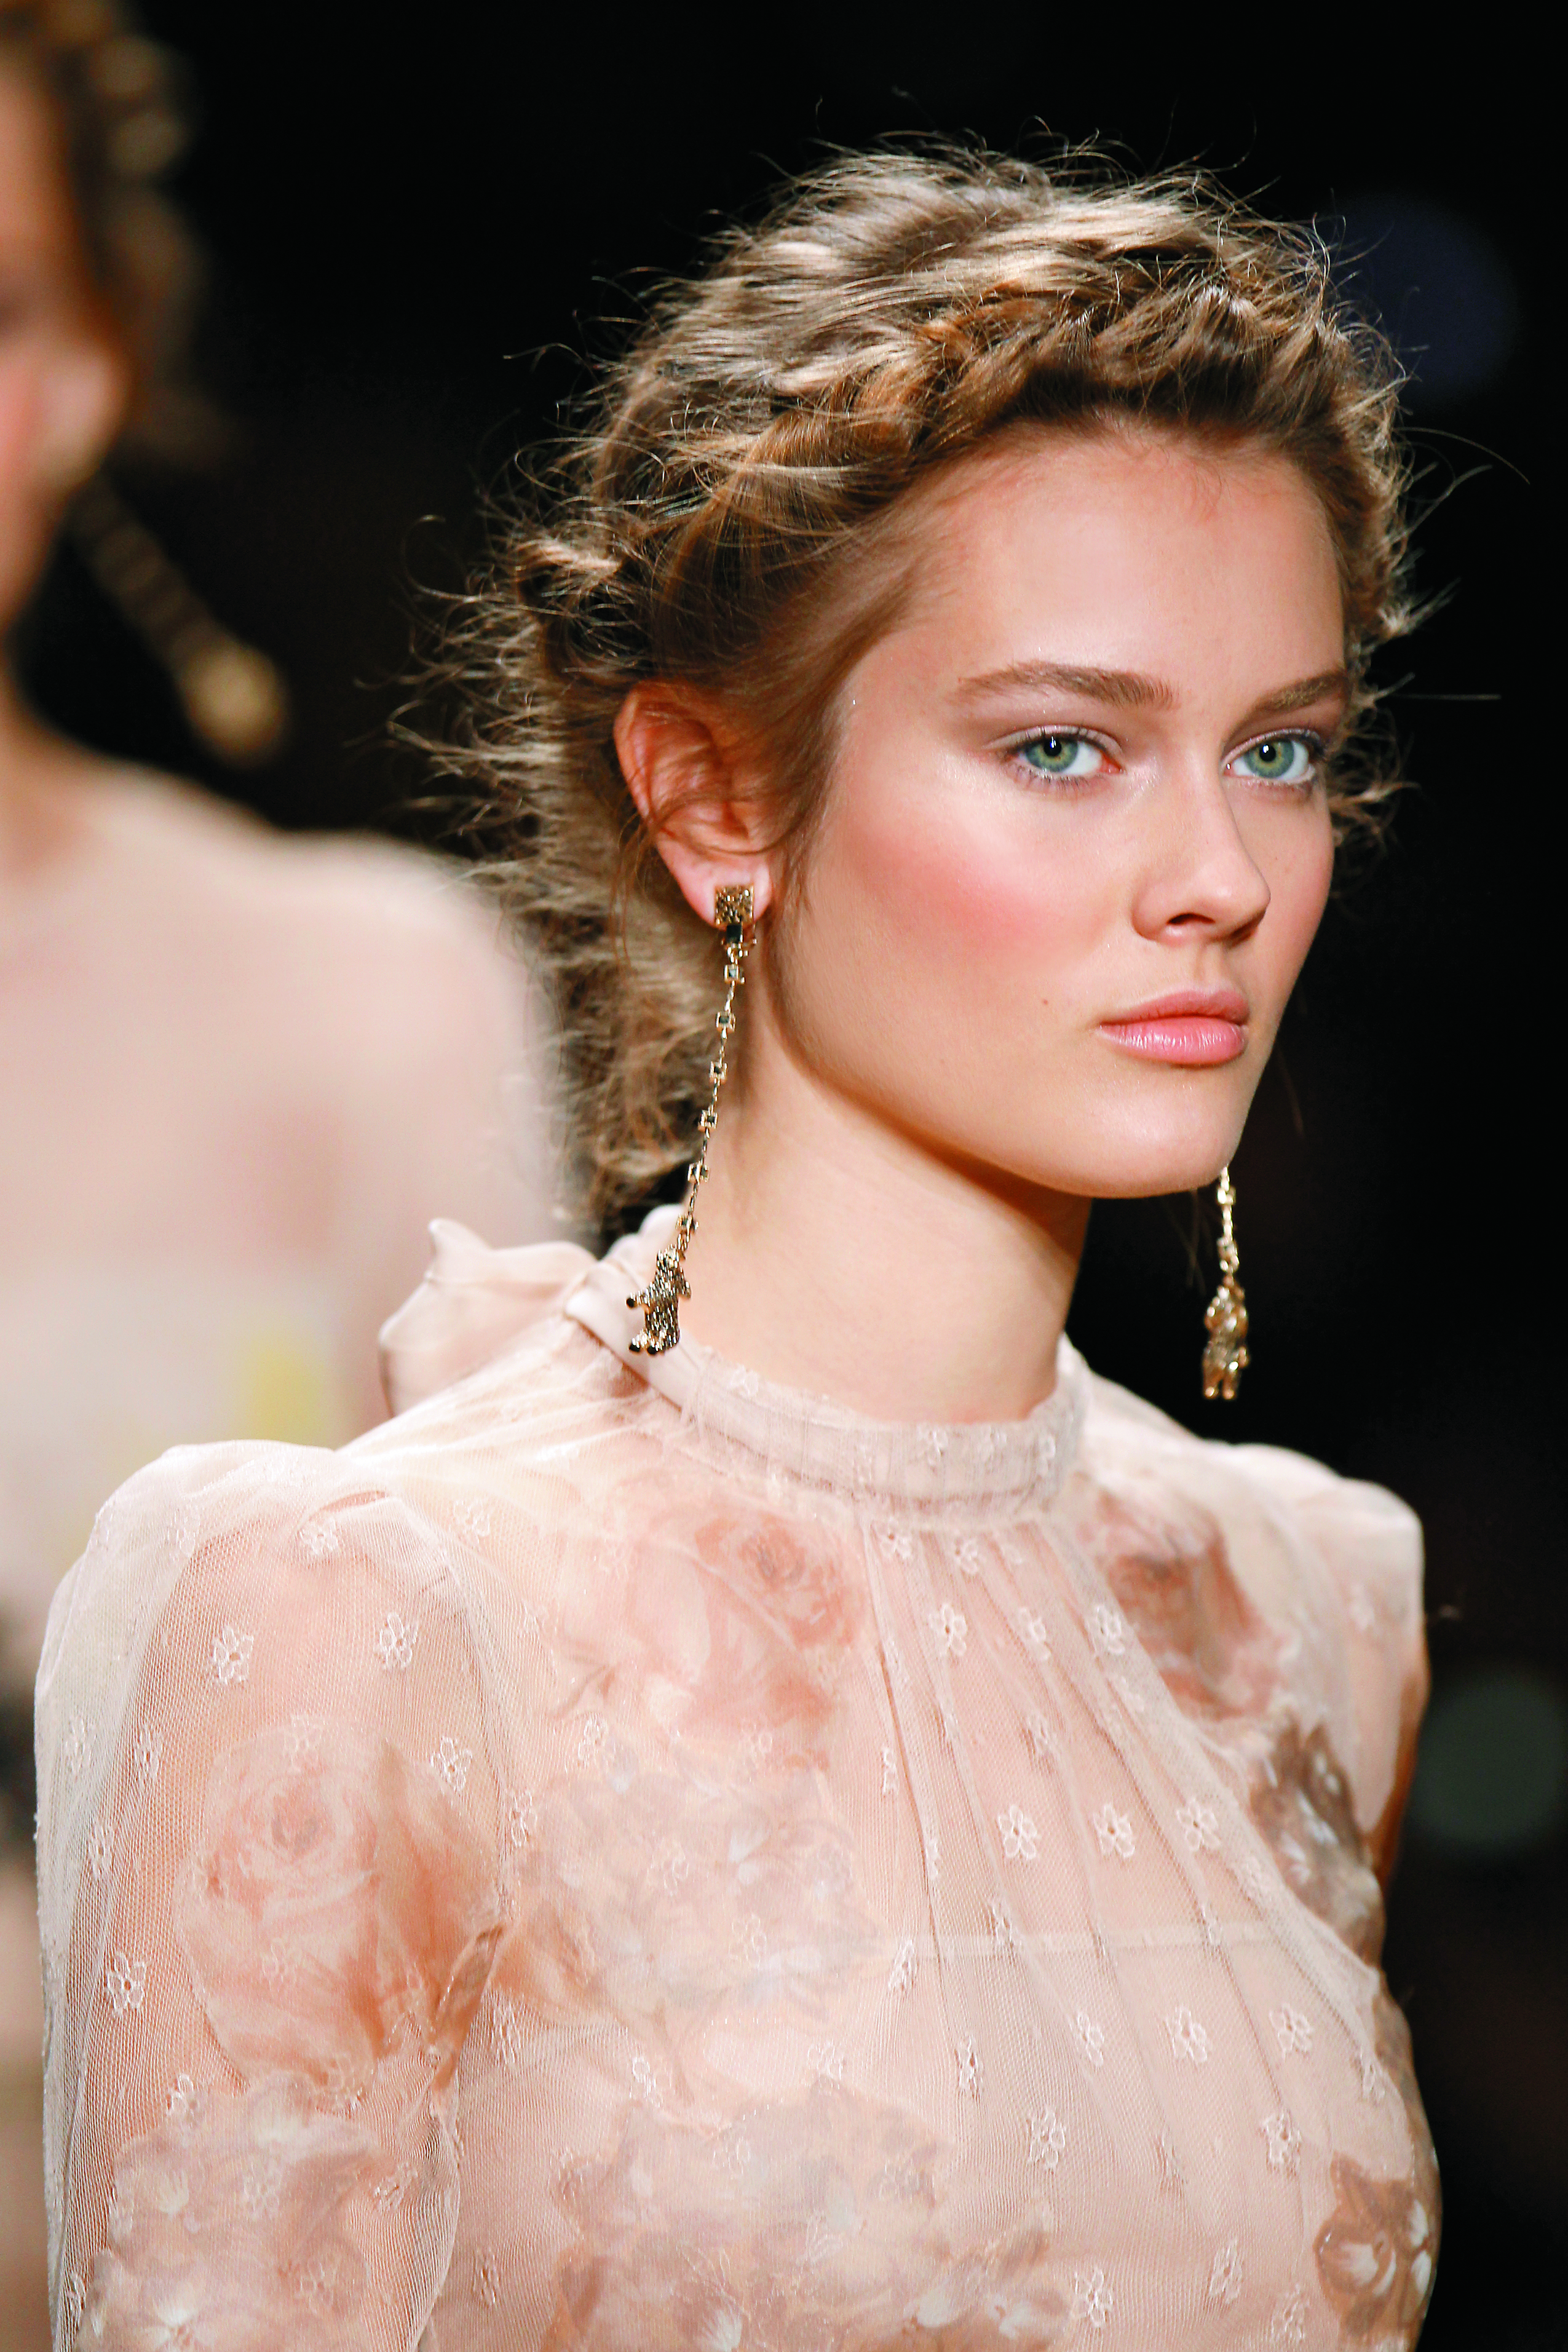 """Valentino's Spring/Summer 2012 season focused on natural beauty, high-drama updos and intricate braids, because as anyone who follows fashion knows, braids are here to stay."""